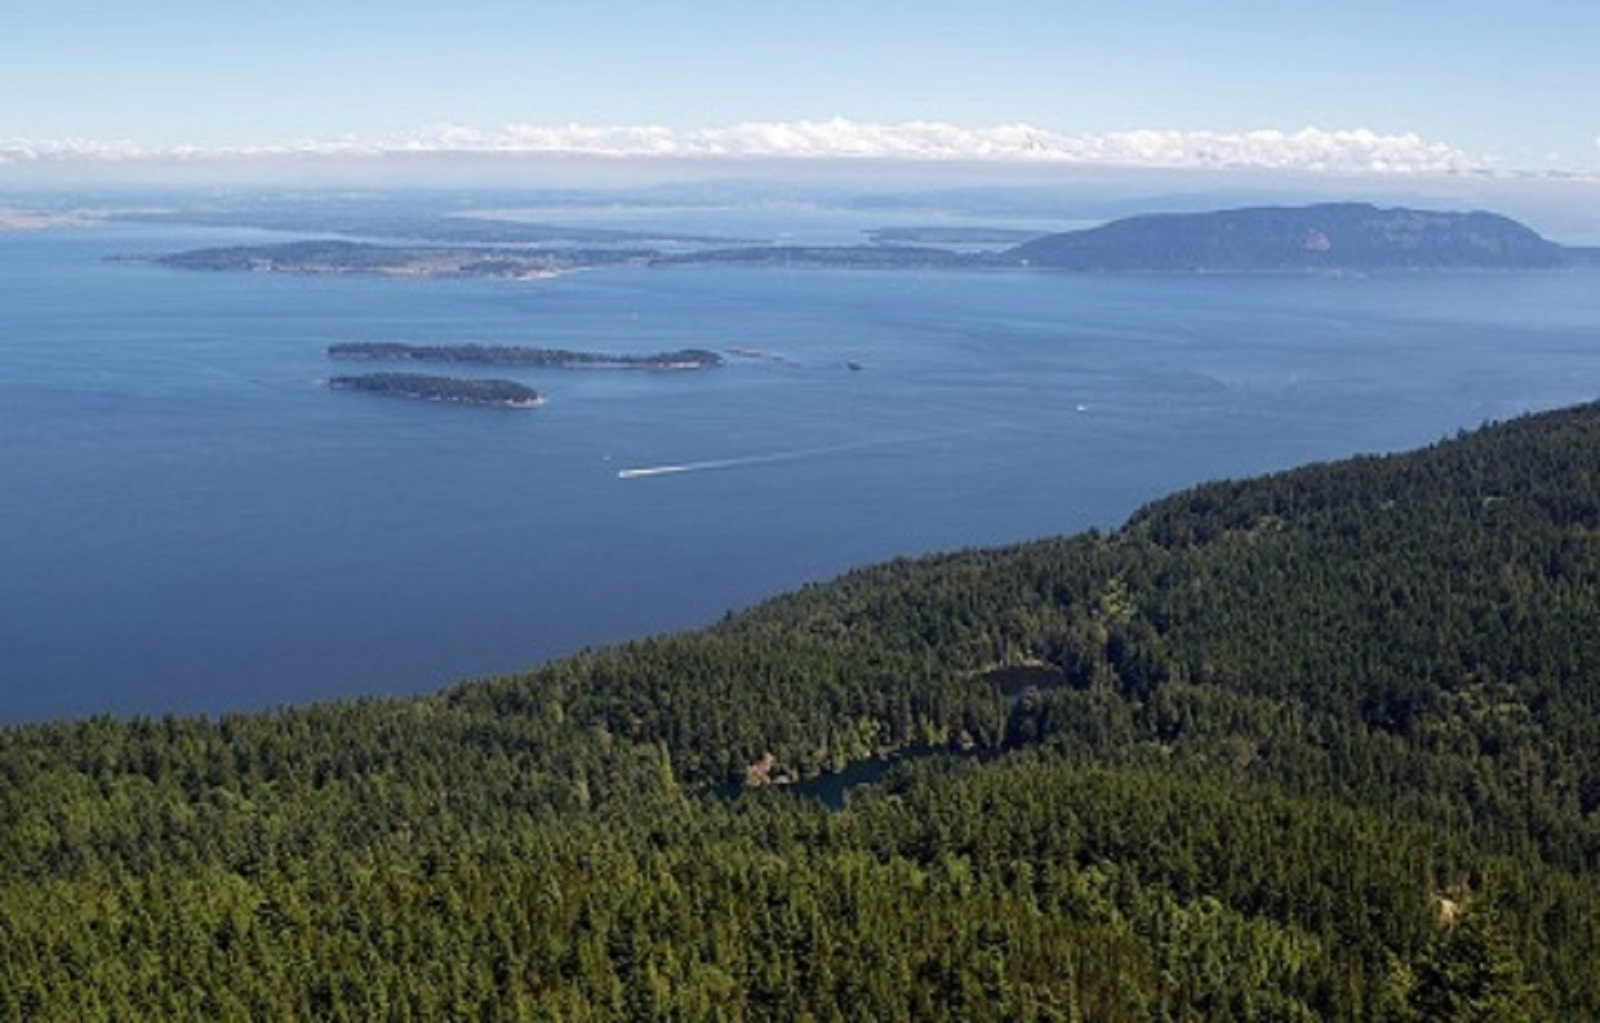 Where Should You Go on Your Boat Charter Around the San Juan Islands?